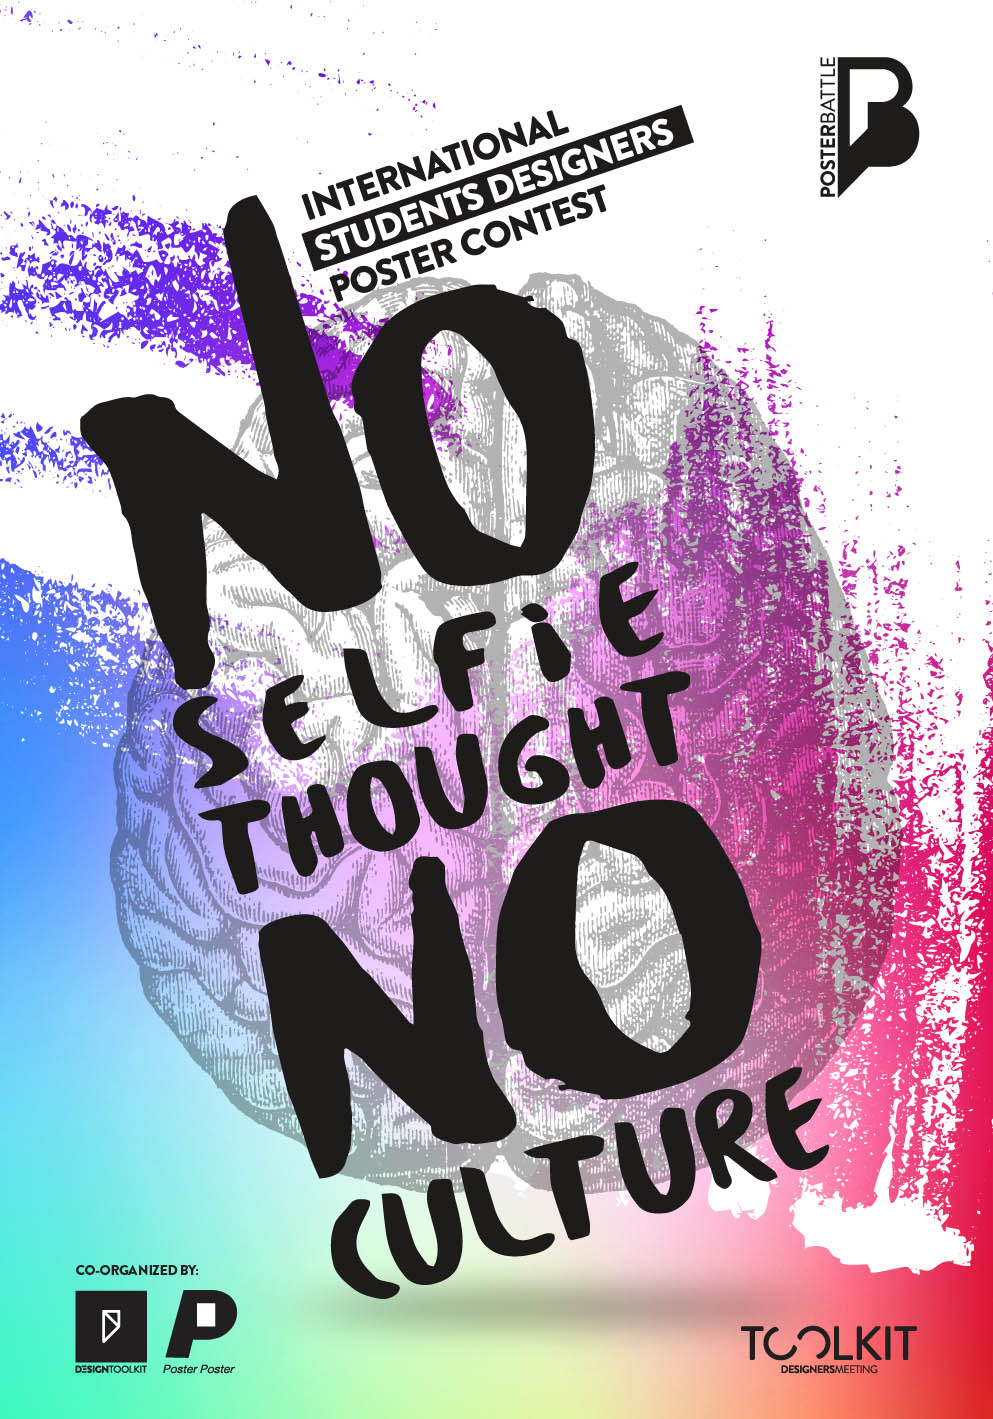 Toolkit Designers Meeting 2016 |Poster Battle 2016 Διαγωνισμός Αφίσας µε θέμα: Νο Selfie Thought – No Culture